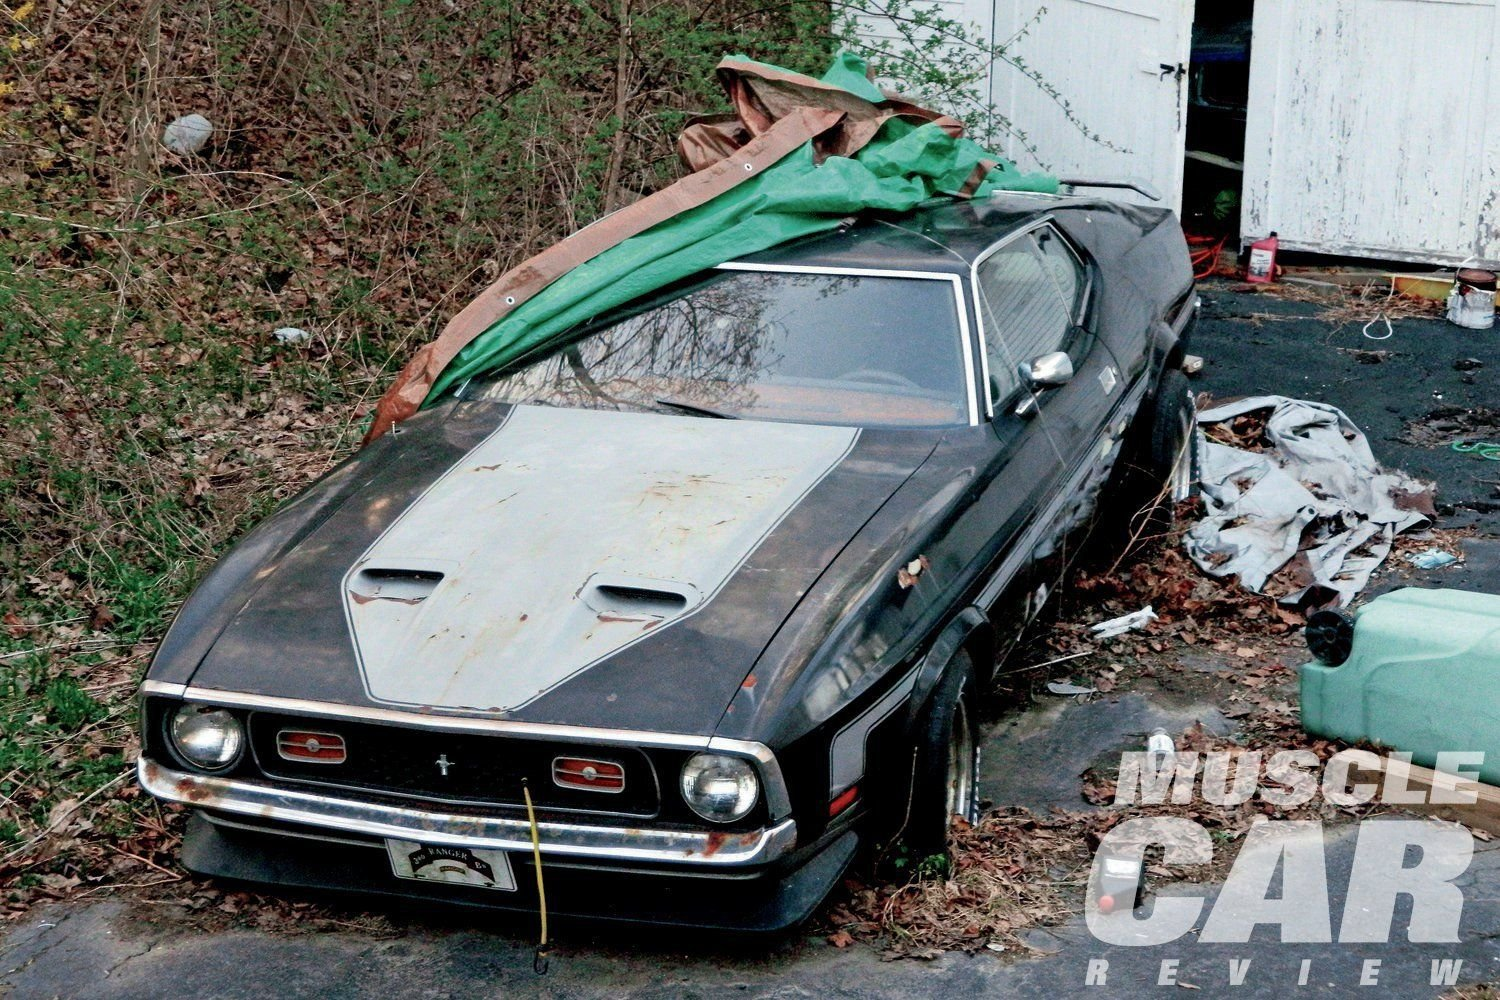 1971 Ford Mustang Pictures C3696 moreover 346 Ford Mustang Mach 1 Wallpaper 2 moreover Gt in addition Car Gallery Automobiles Florida as well Mustang Fastback. on 1970 ford mustang mach 1 craigslist for sale